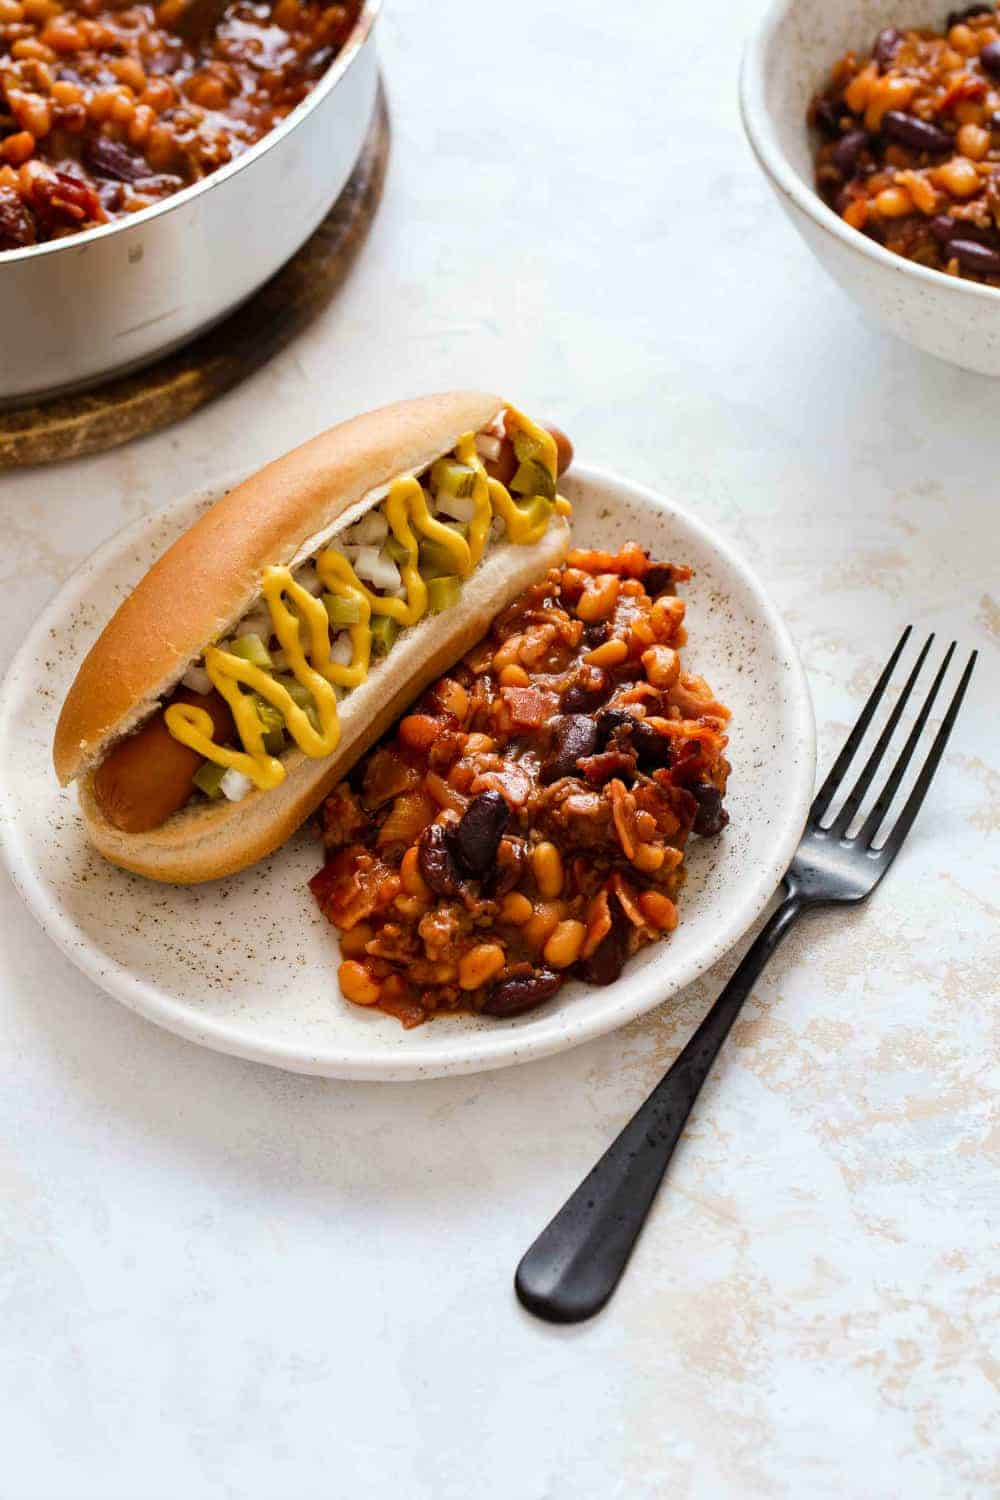 Old fashioned baked beans and a hot dog on a white plate